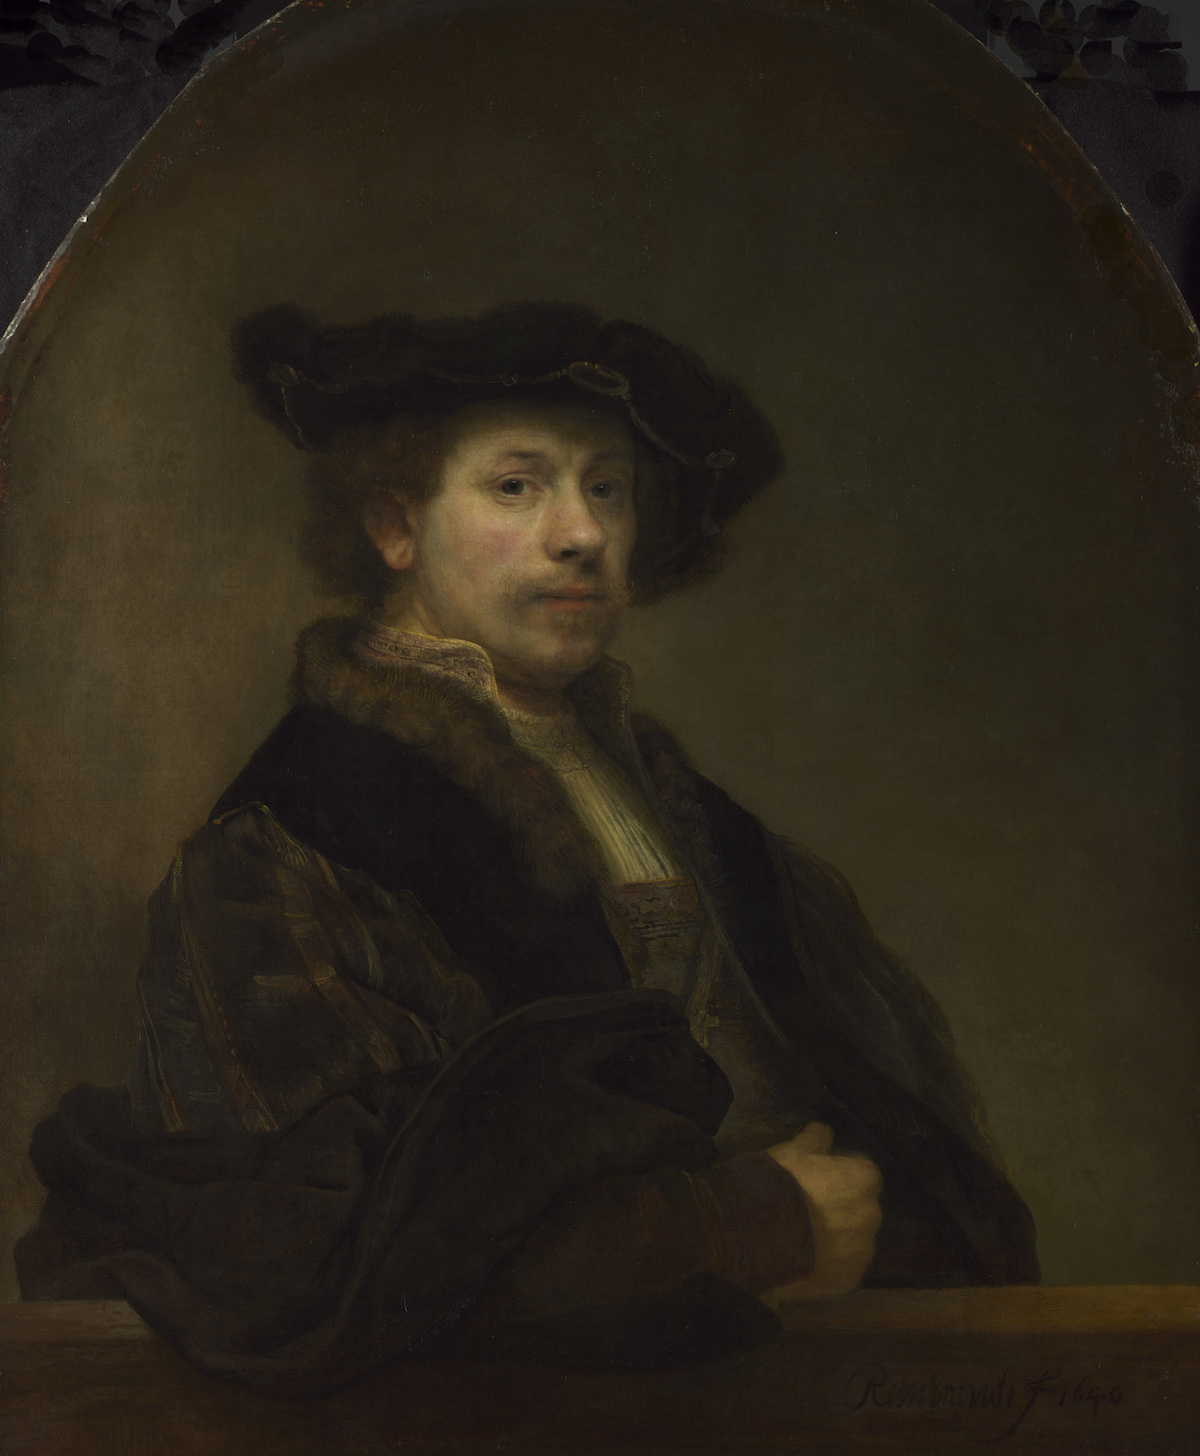 SelfPortrait-NationalGallery.jpg